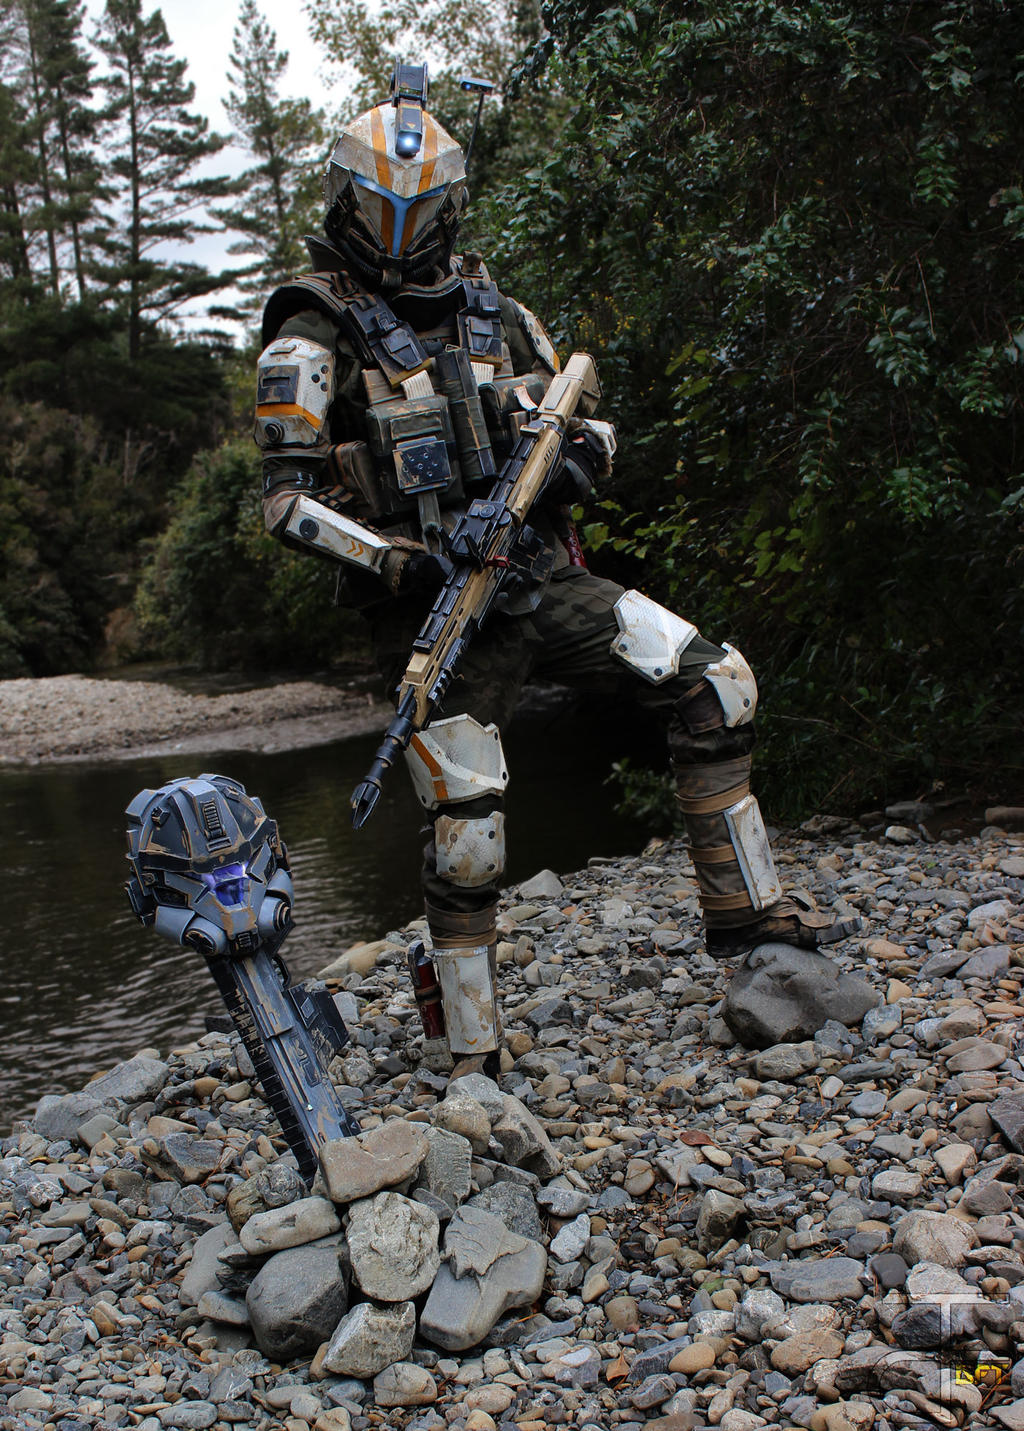 titanfall 2 holo pilot cosplay andrewdft by cpcody on